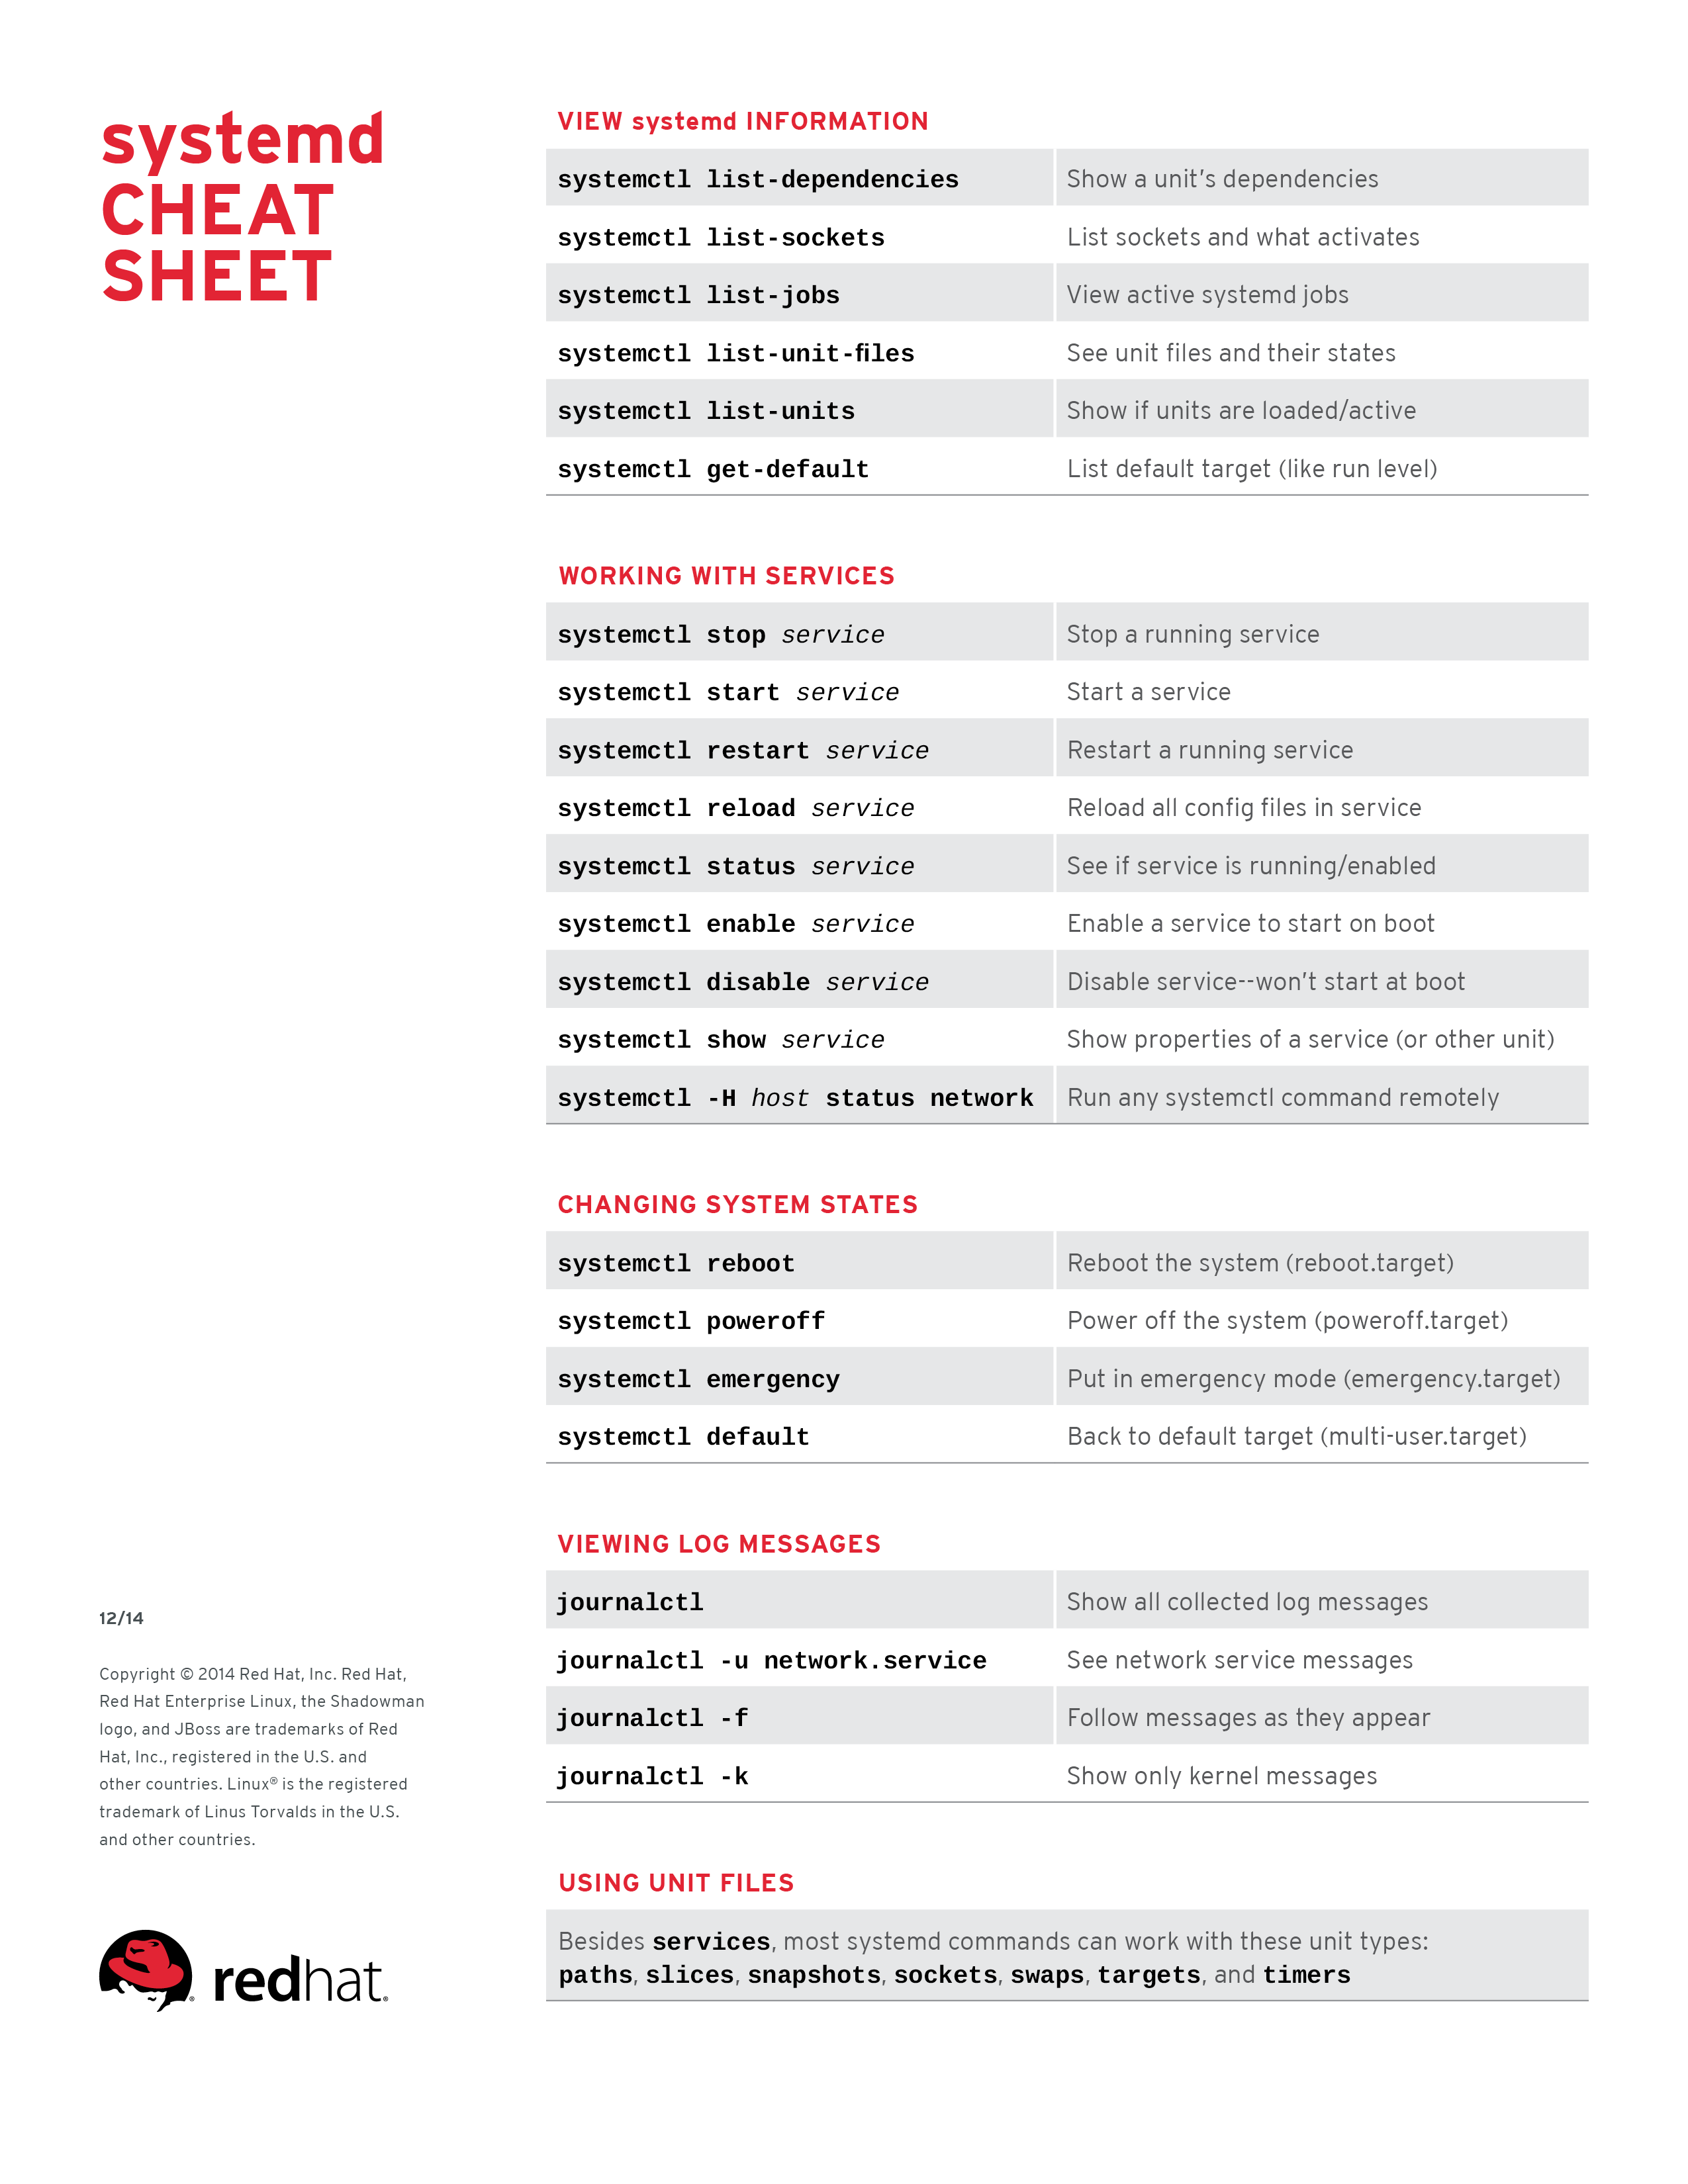 systemd Cheat Sheet for Red Hat Enterprise Linux